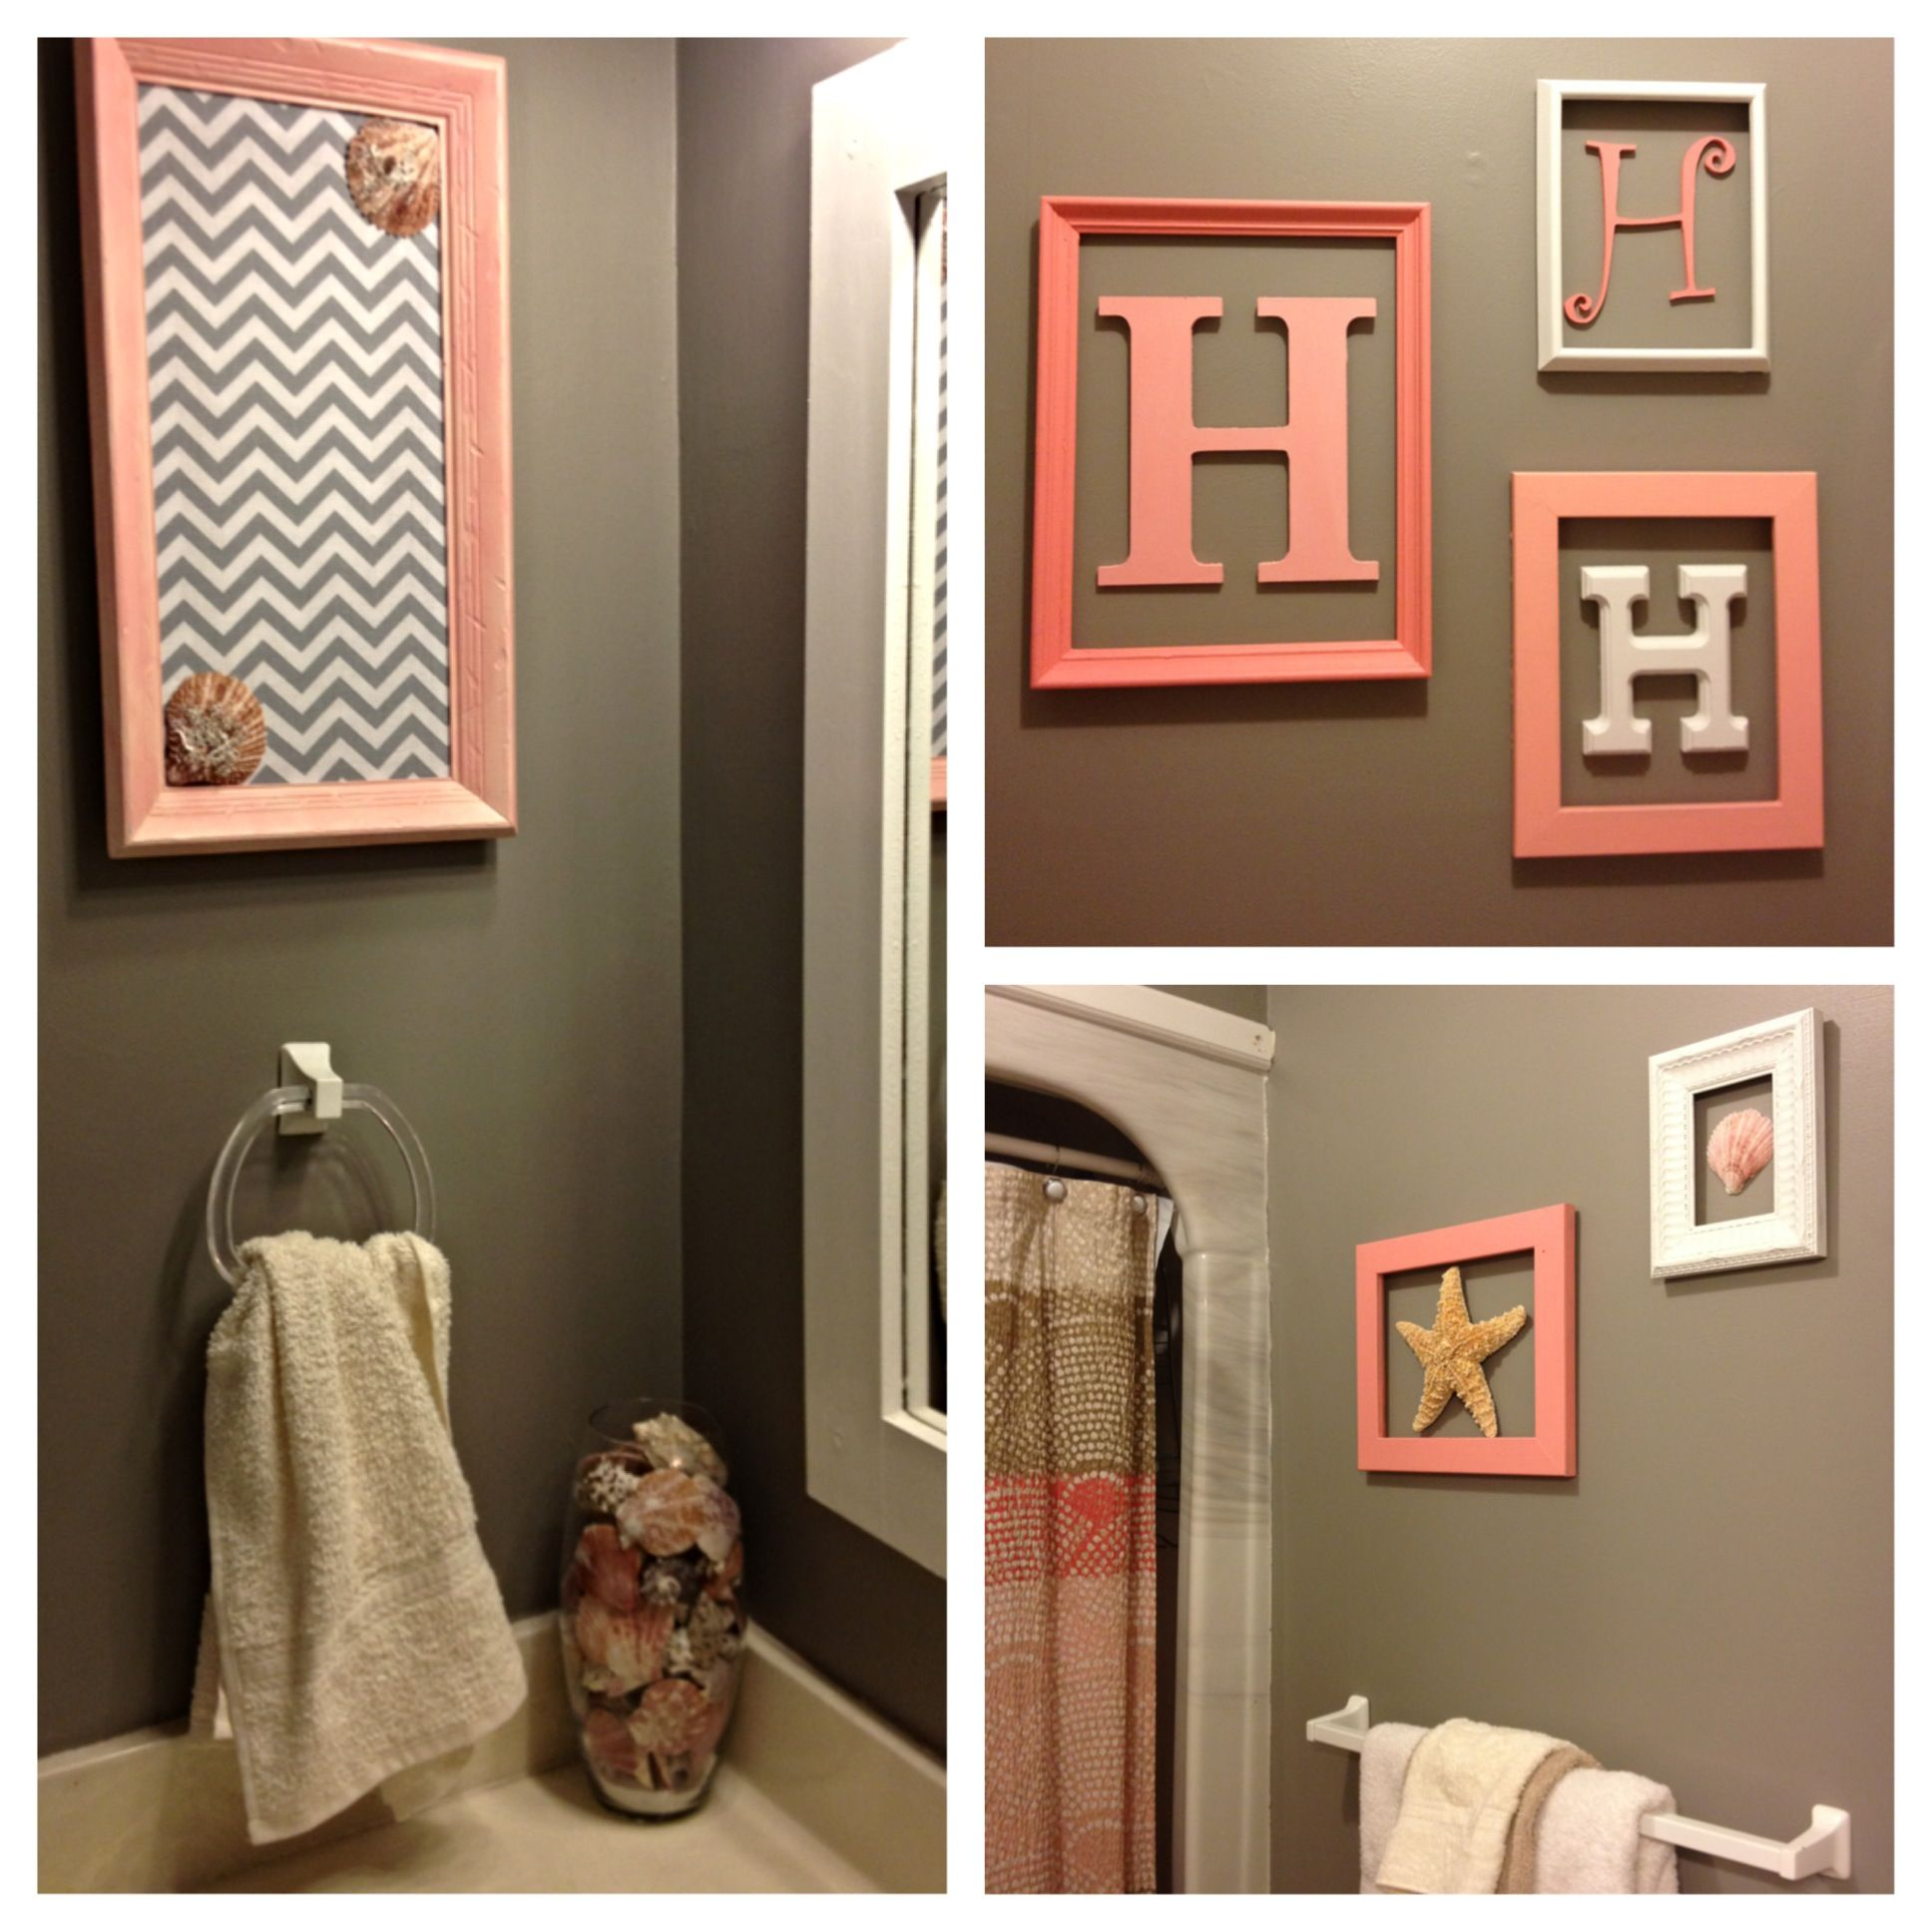 Pin By Kelly Heflin On Home Coral Bathroom Decor Pink Bathroom Decor Coral Bathroom